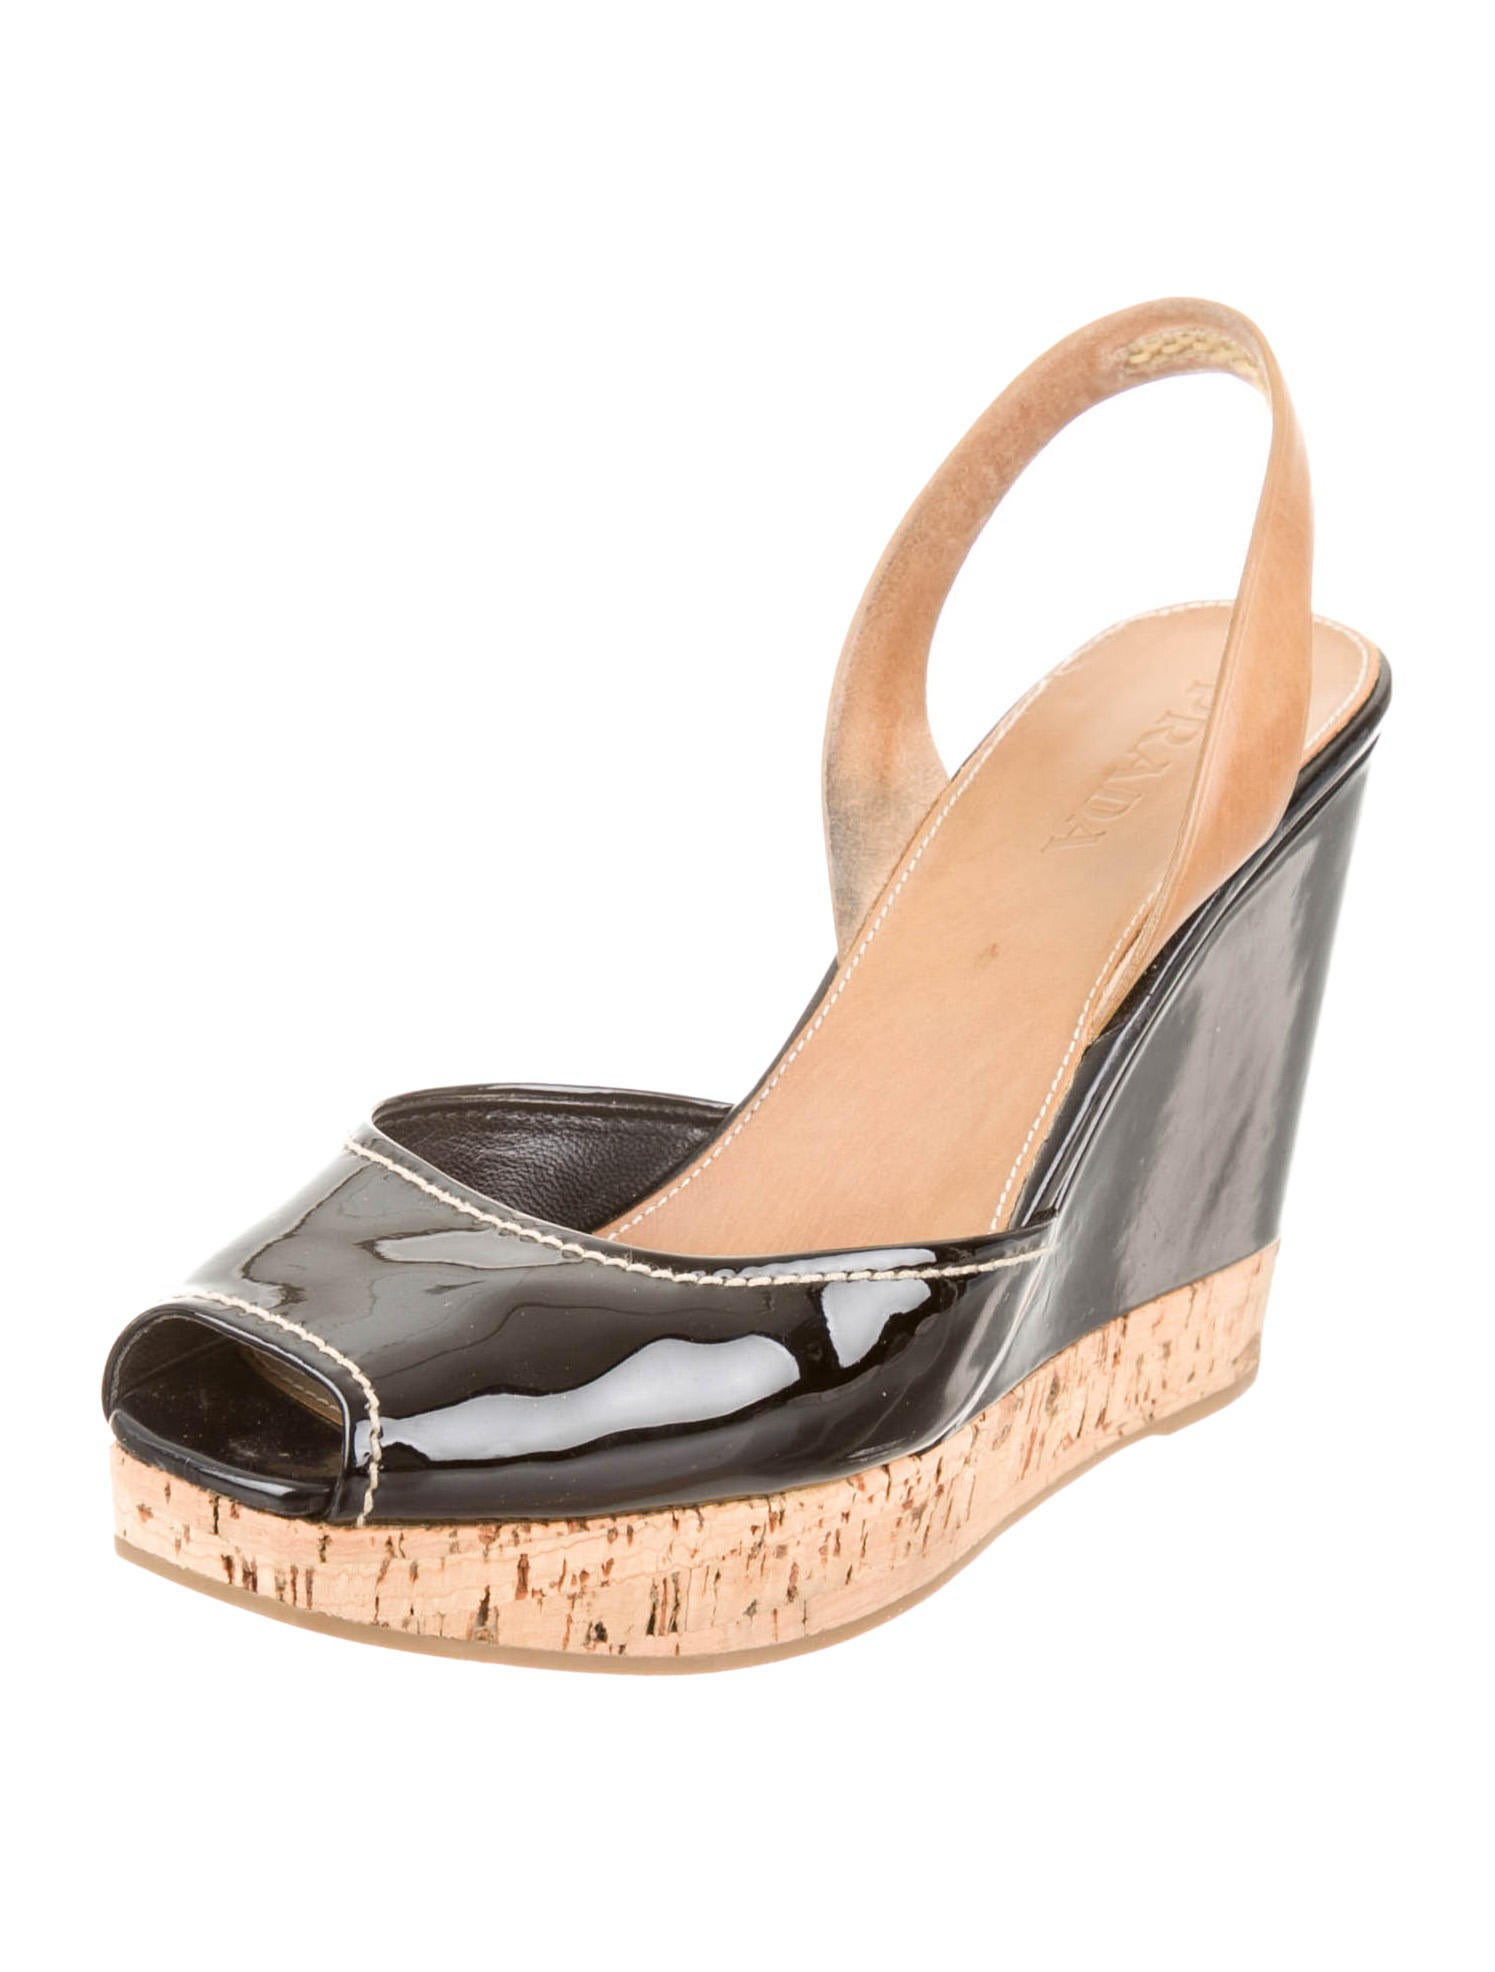 Peep Toe Flat Shoes. Clothing. Shoes. Womens Shoes. Peep Toe Flat Shoes. Showing 48 of results that match your query. Product - Fisher-7 Women's Slip On Patent Open Peep Toe Low Wedge Heel Pump Shoes. Product Image. Price $ Product Title. Fisher-7 Women's Slip On Patent Open Peep Toe Low Wedge Heel Pump Shoes.